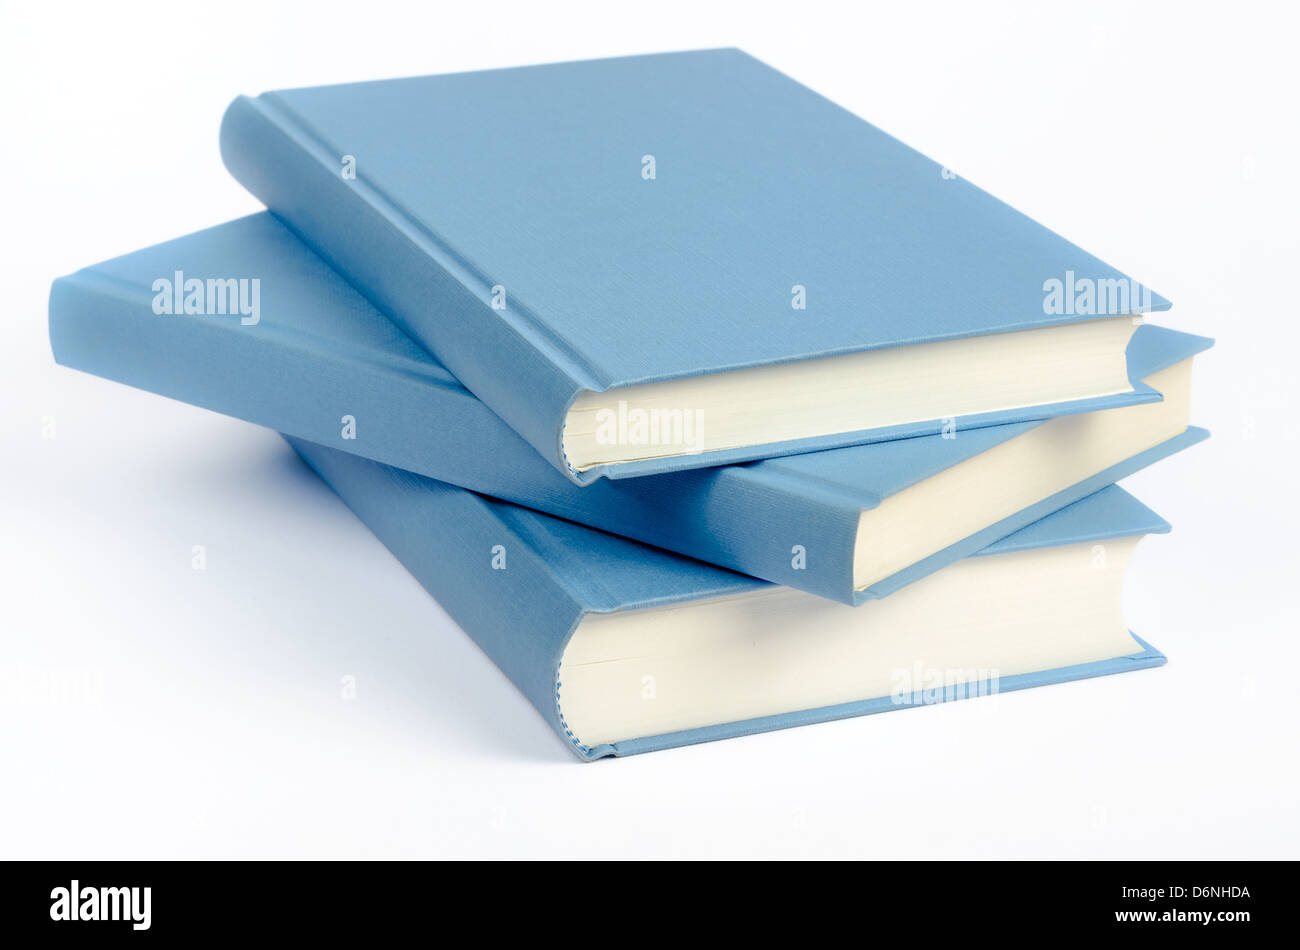 Three blue books on a white background - Stock Image